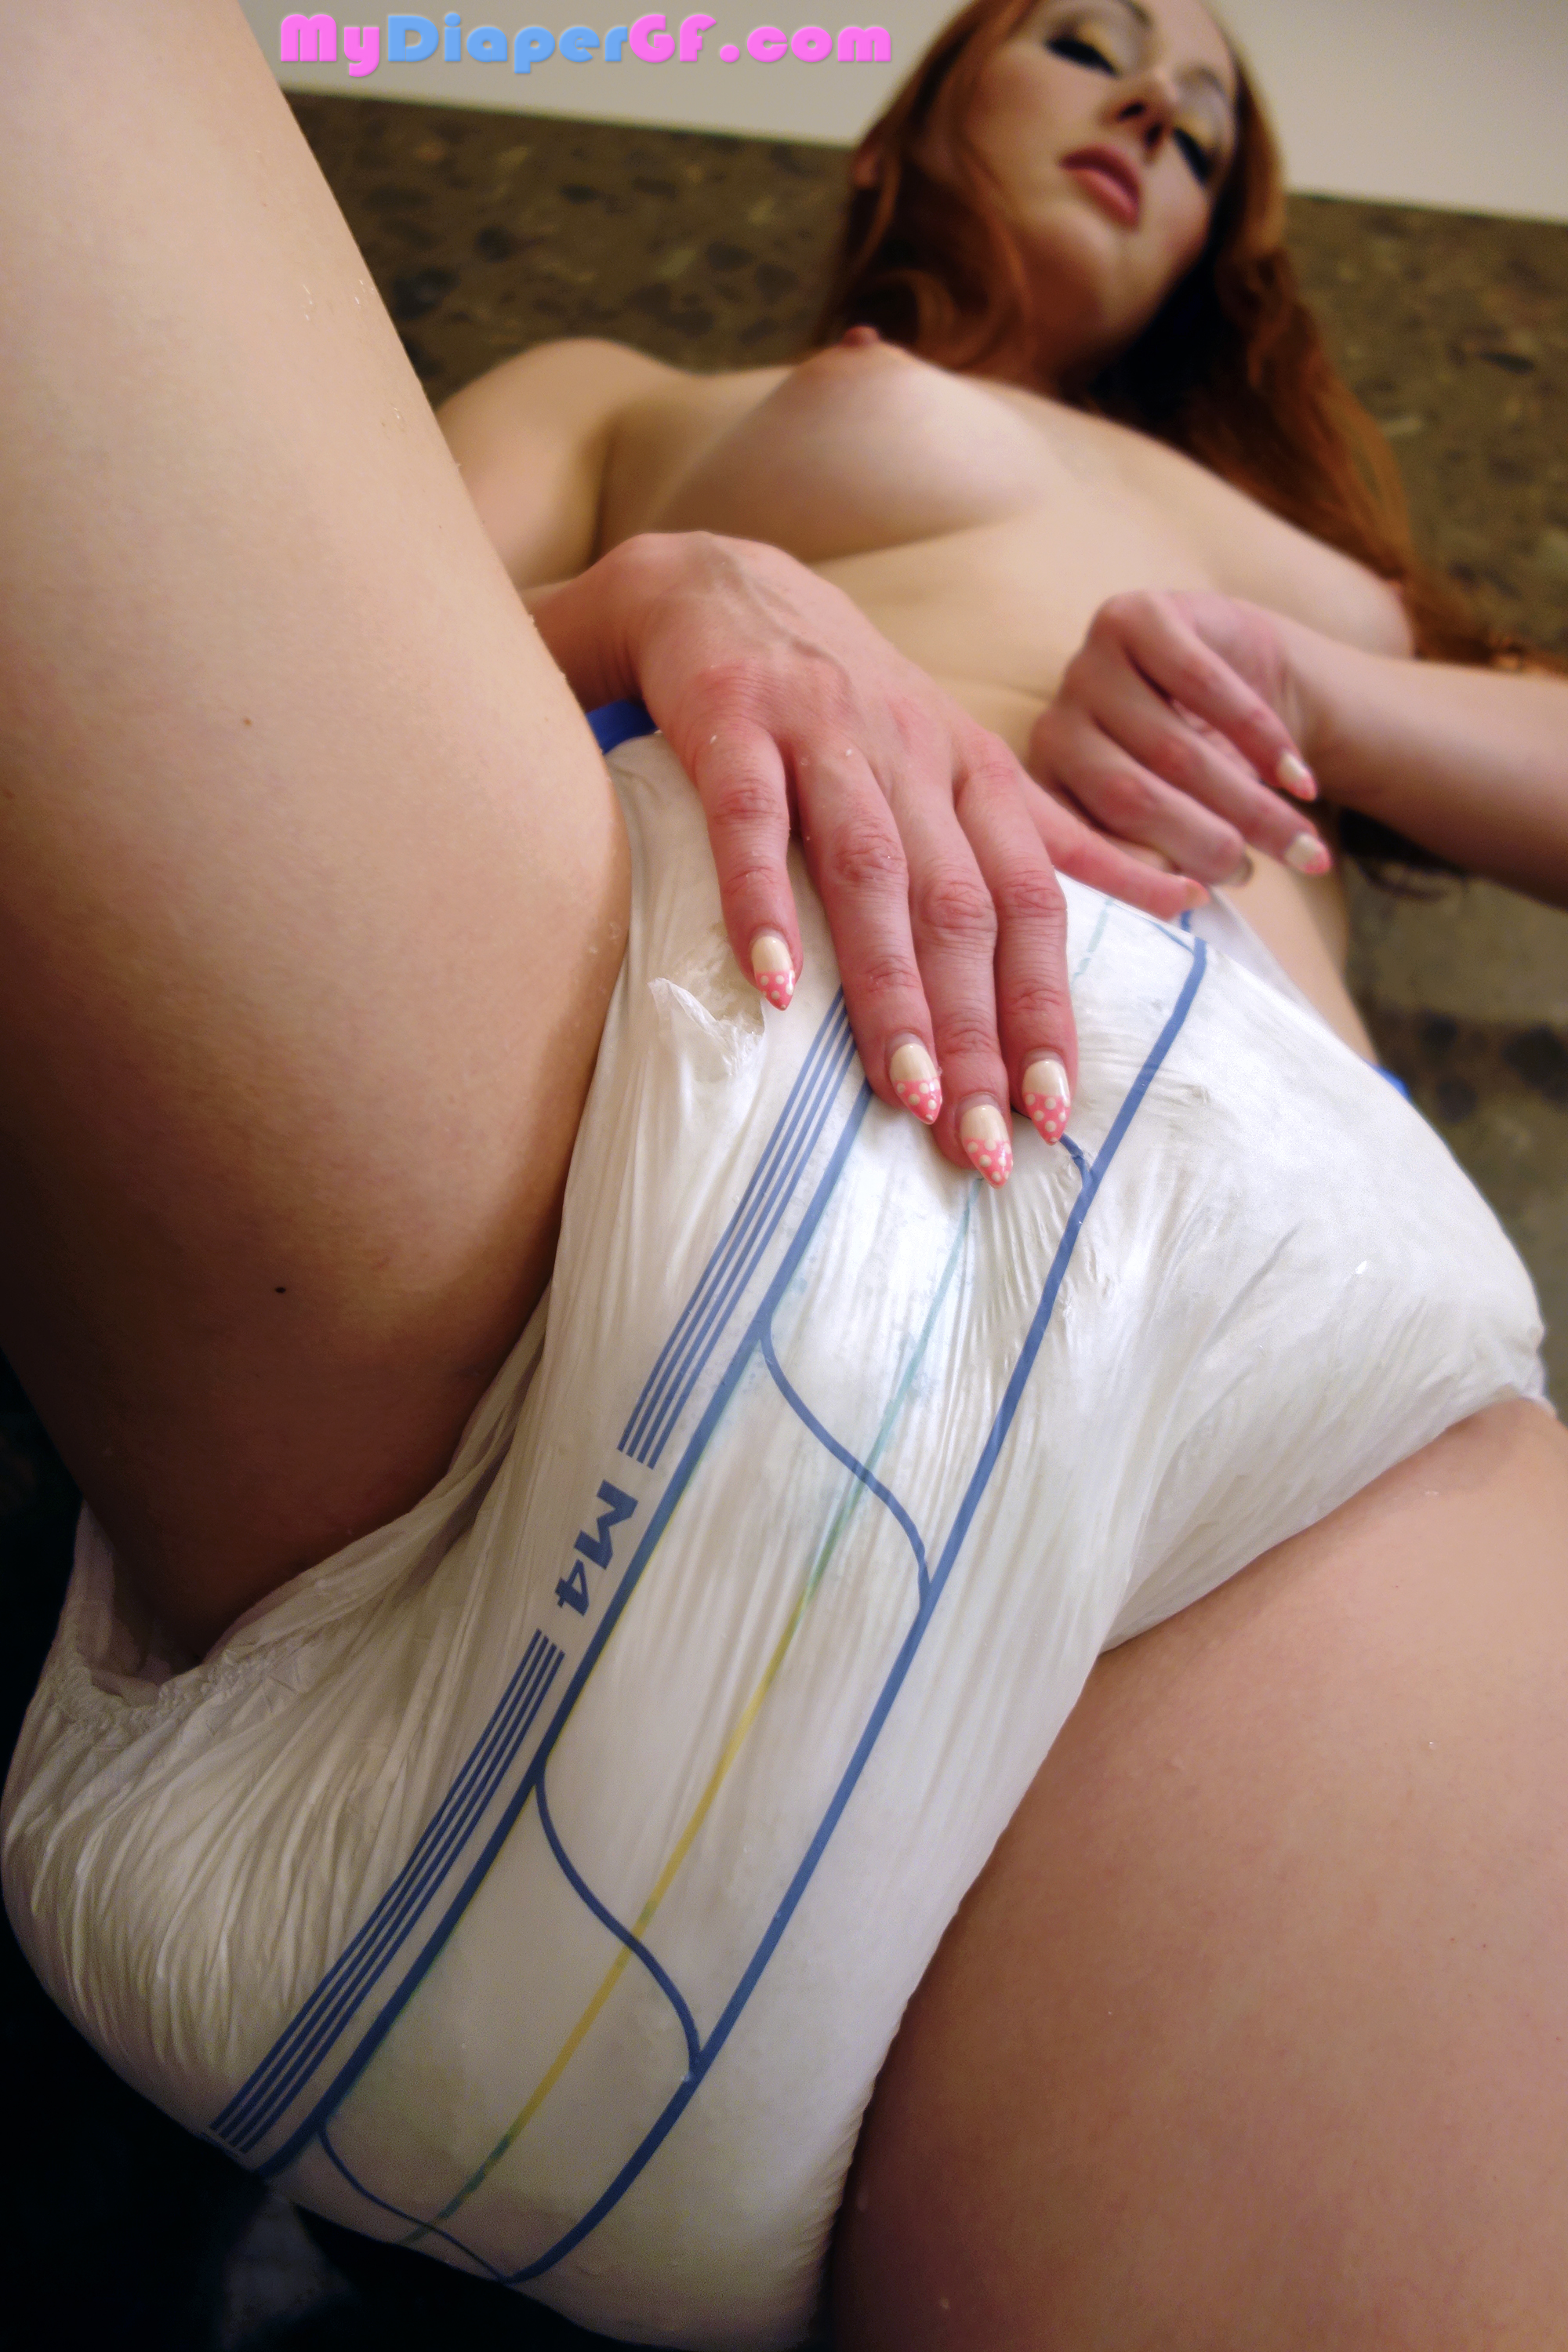 Hot diaper girl porn apologise, but